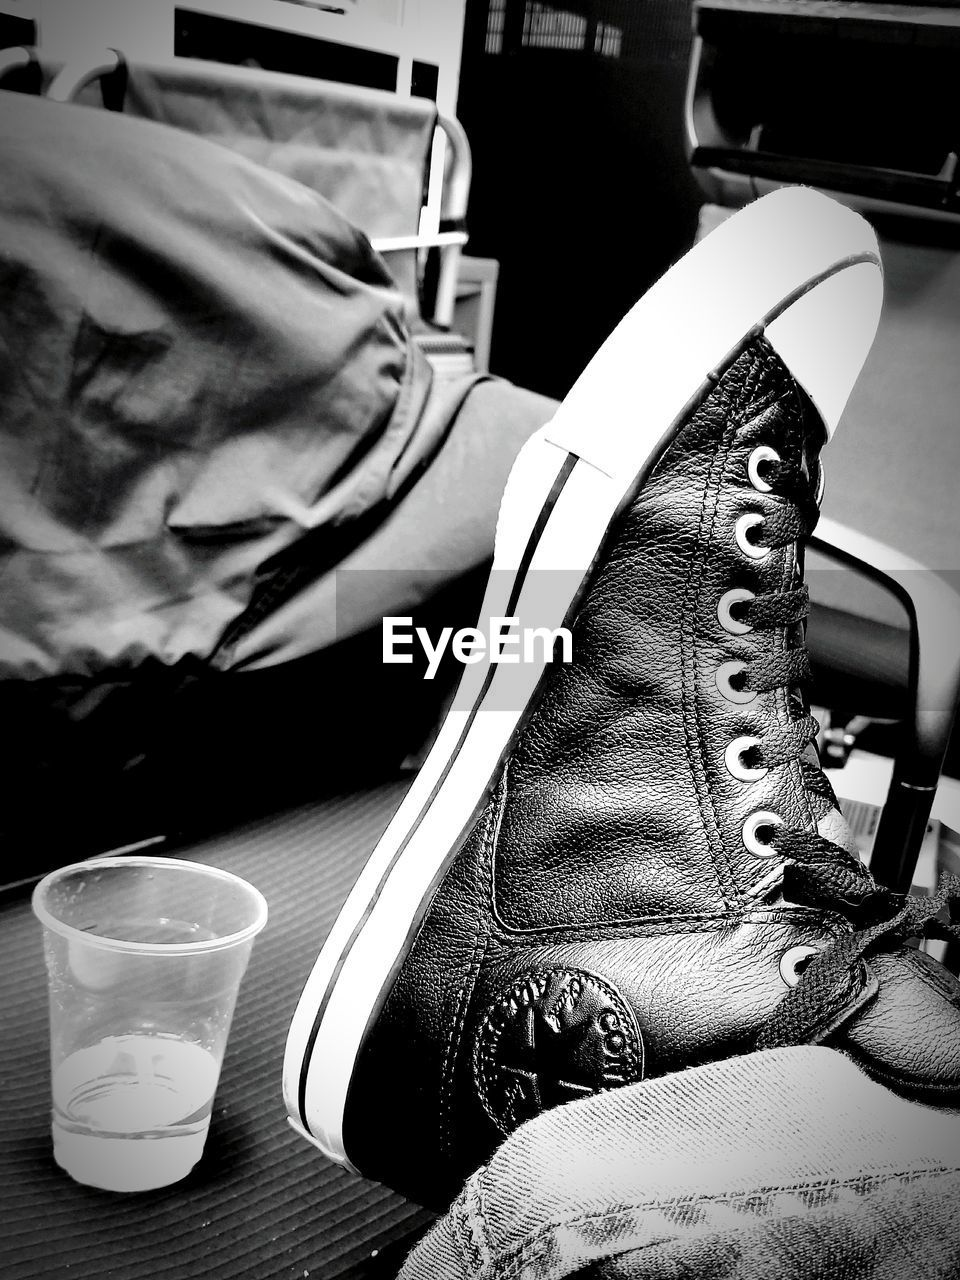 shoe, indoors, real people, close-up, table, focus on foreground, still life, drink, refreshment, fashion, relaxation, furniture, lifestyles, low section, food and drink, bed, glass, jeans